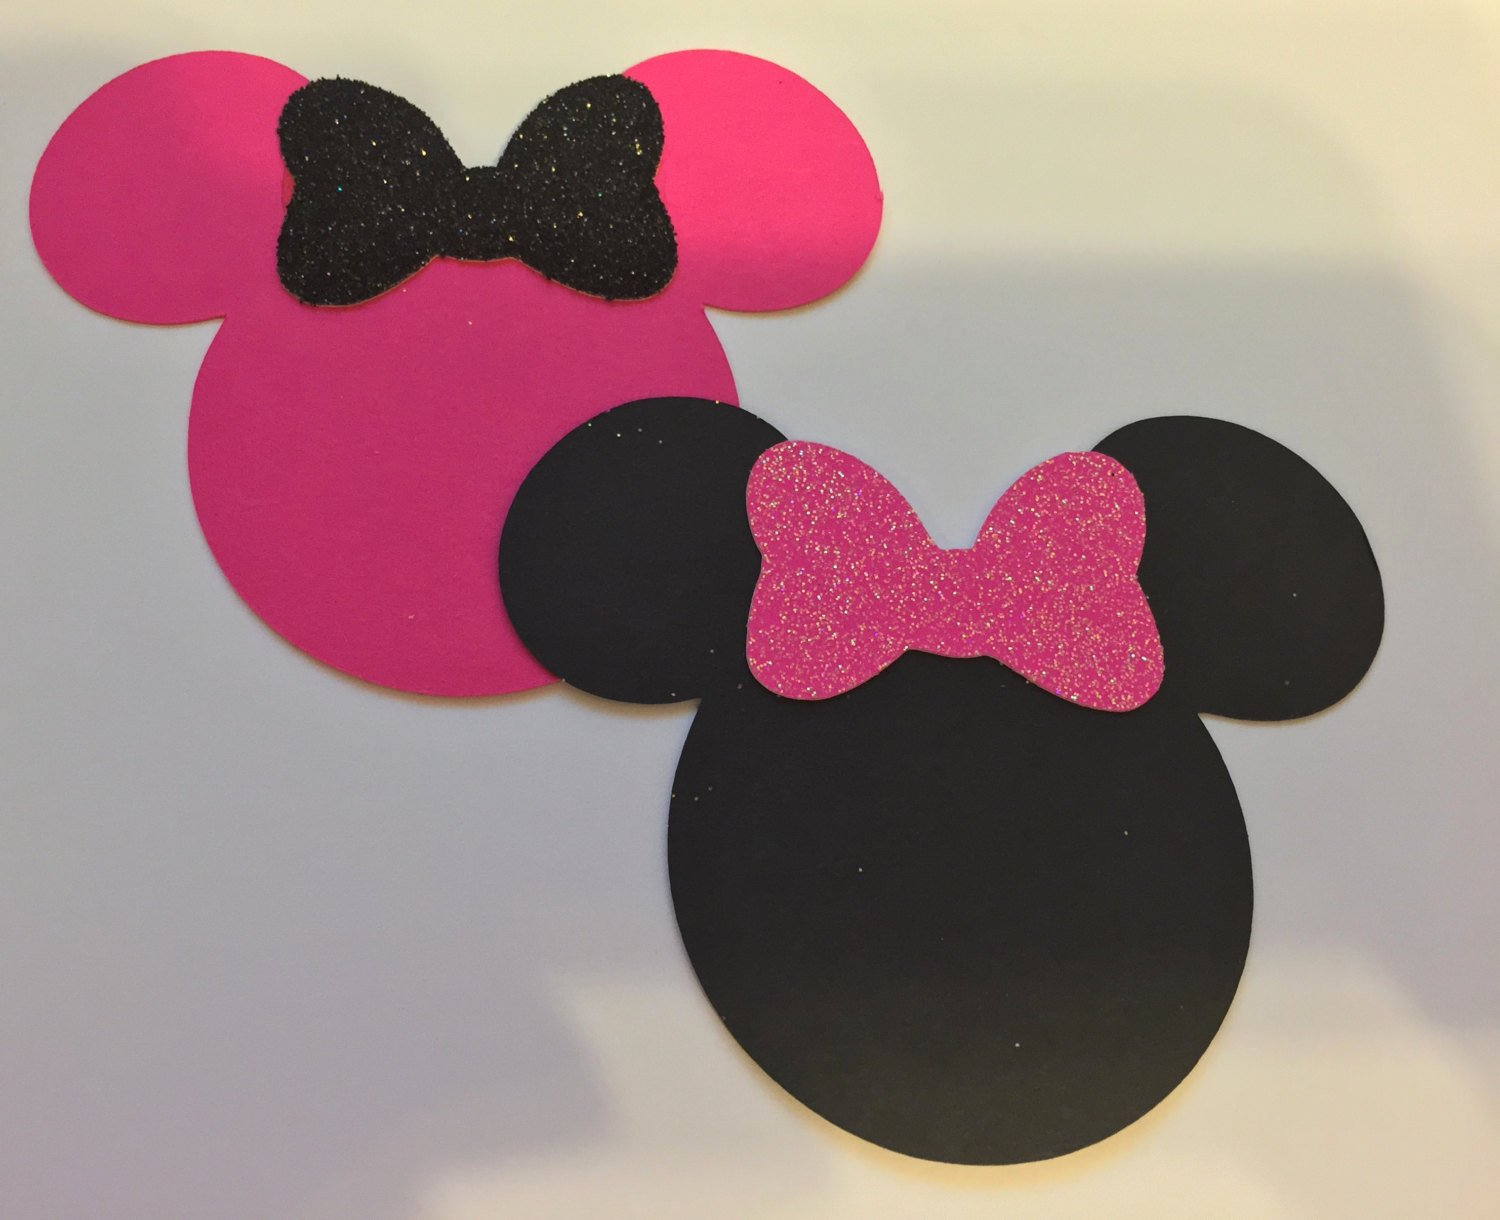 Minnie Mouse Cut Out Head Awesome 20 3 Minnie Mouse Head Silhouettes Card Stock Cutouts